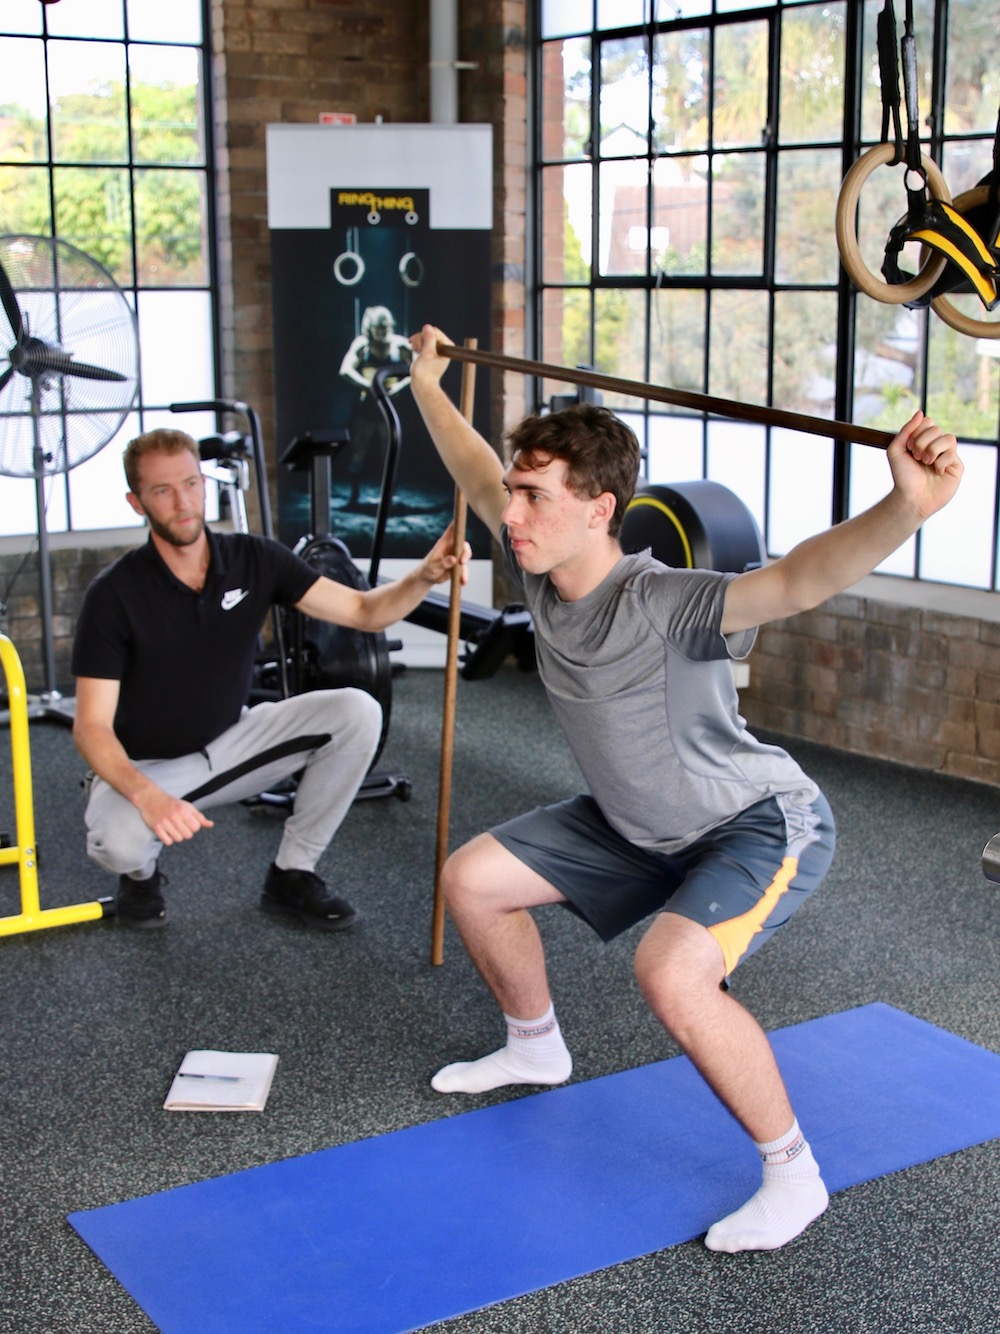 Hip and shoulder strength and mobility - achieved through overhead squat movement - can protect these joints from injury.